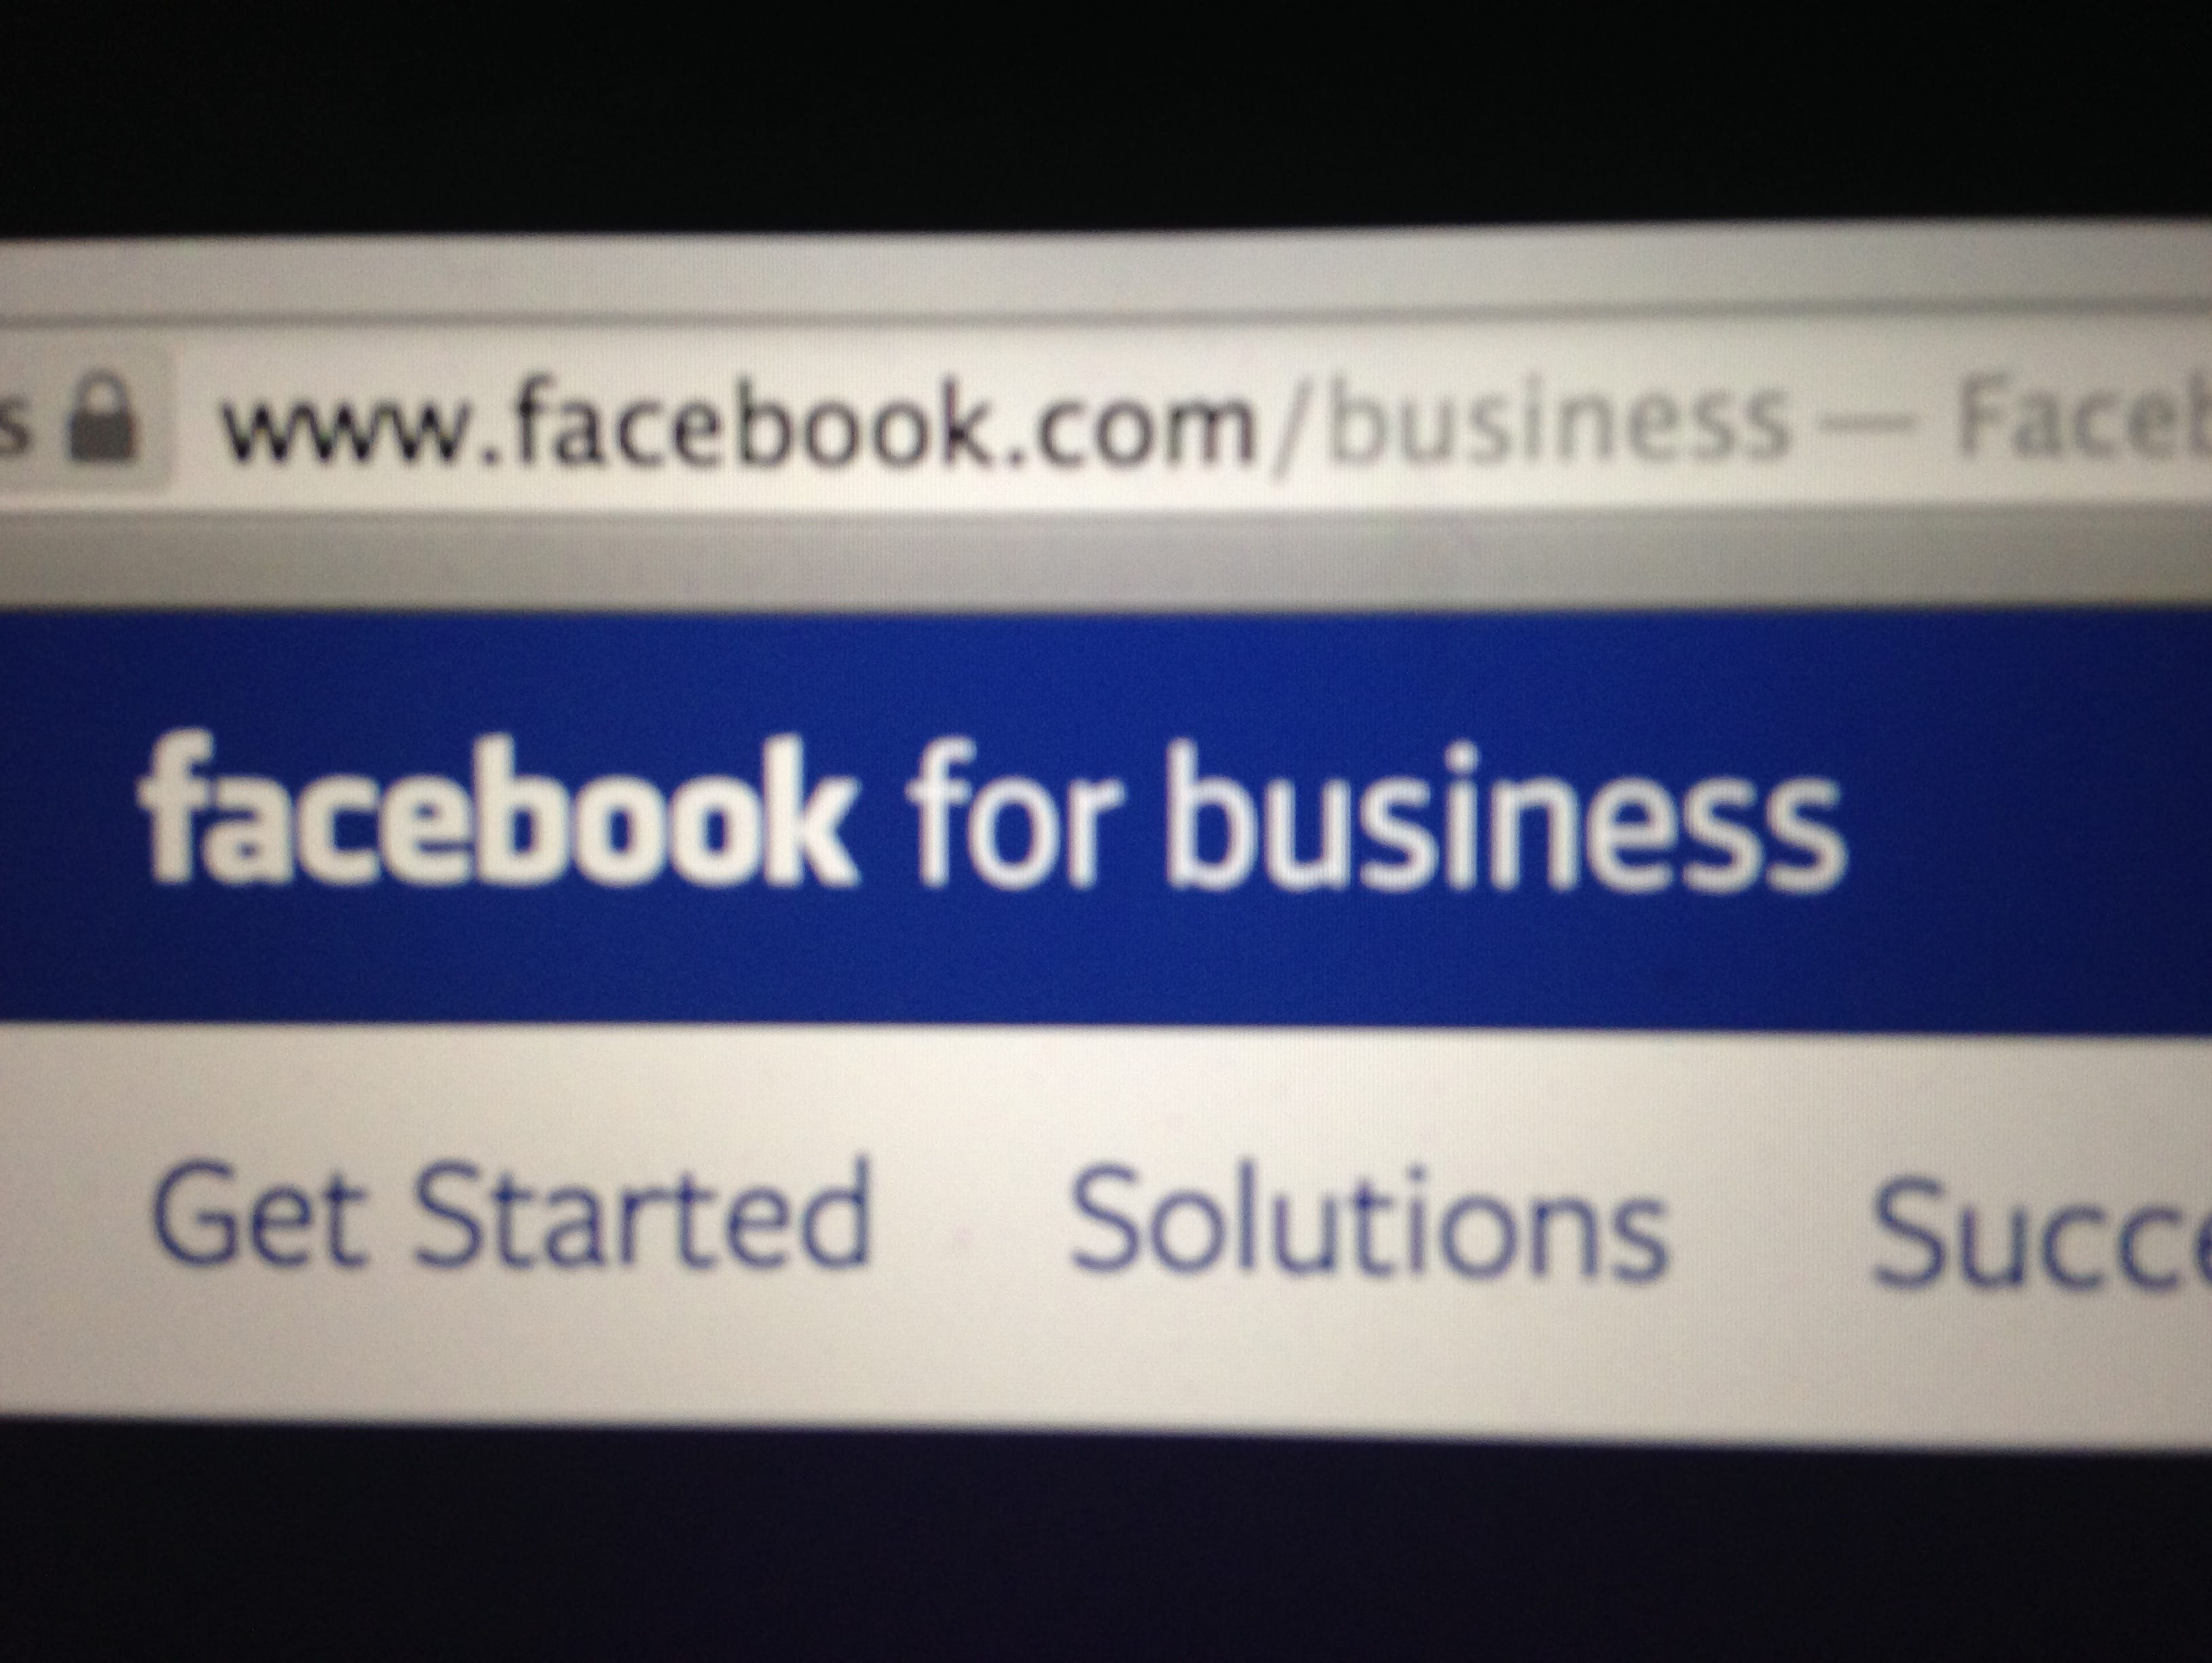 The intro page for Facebook's existing